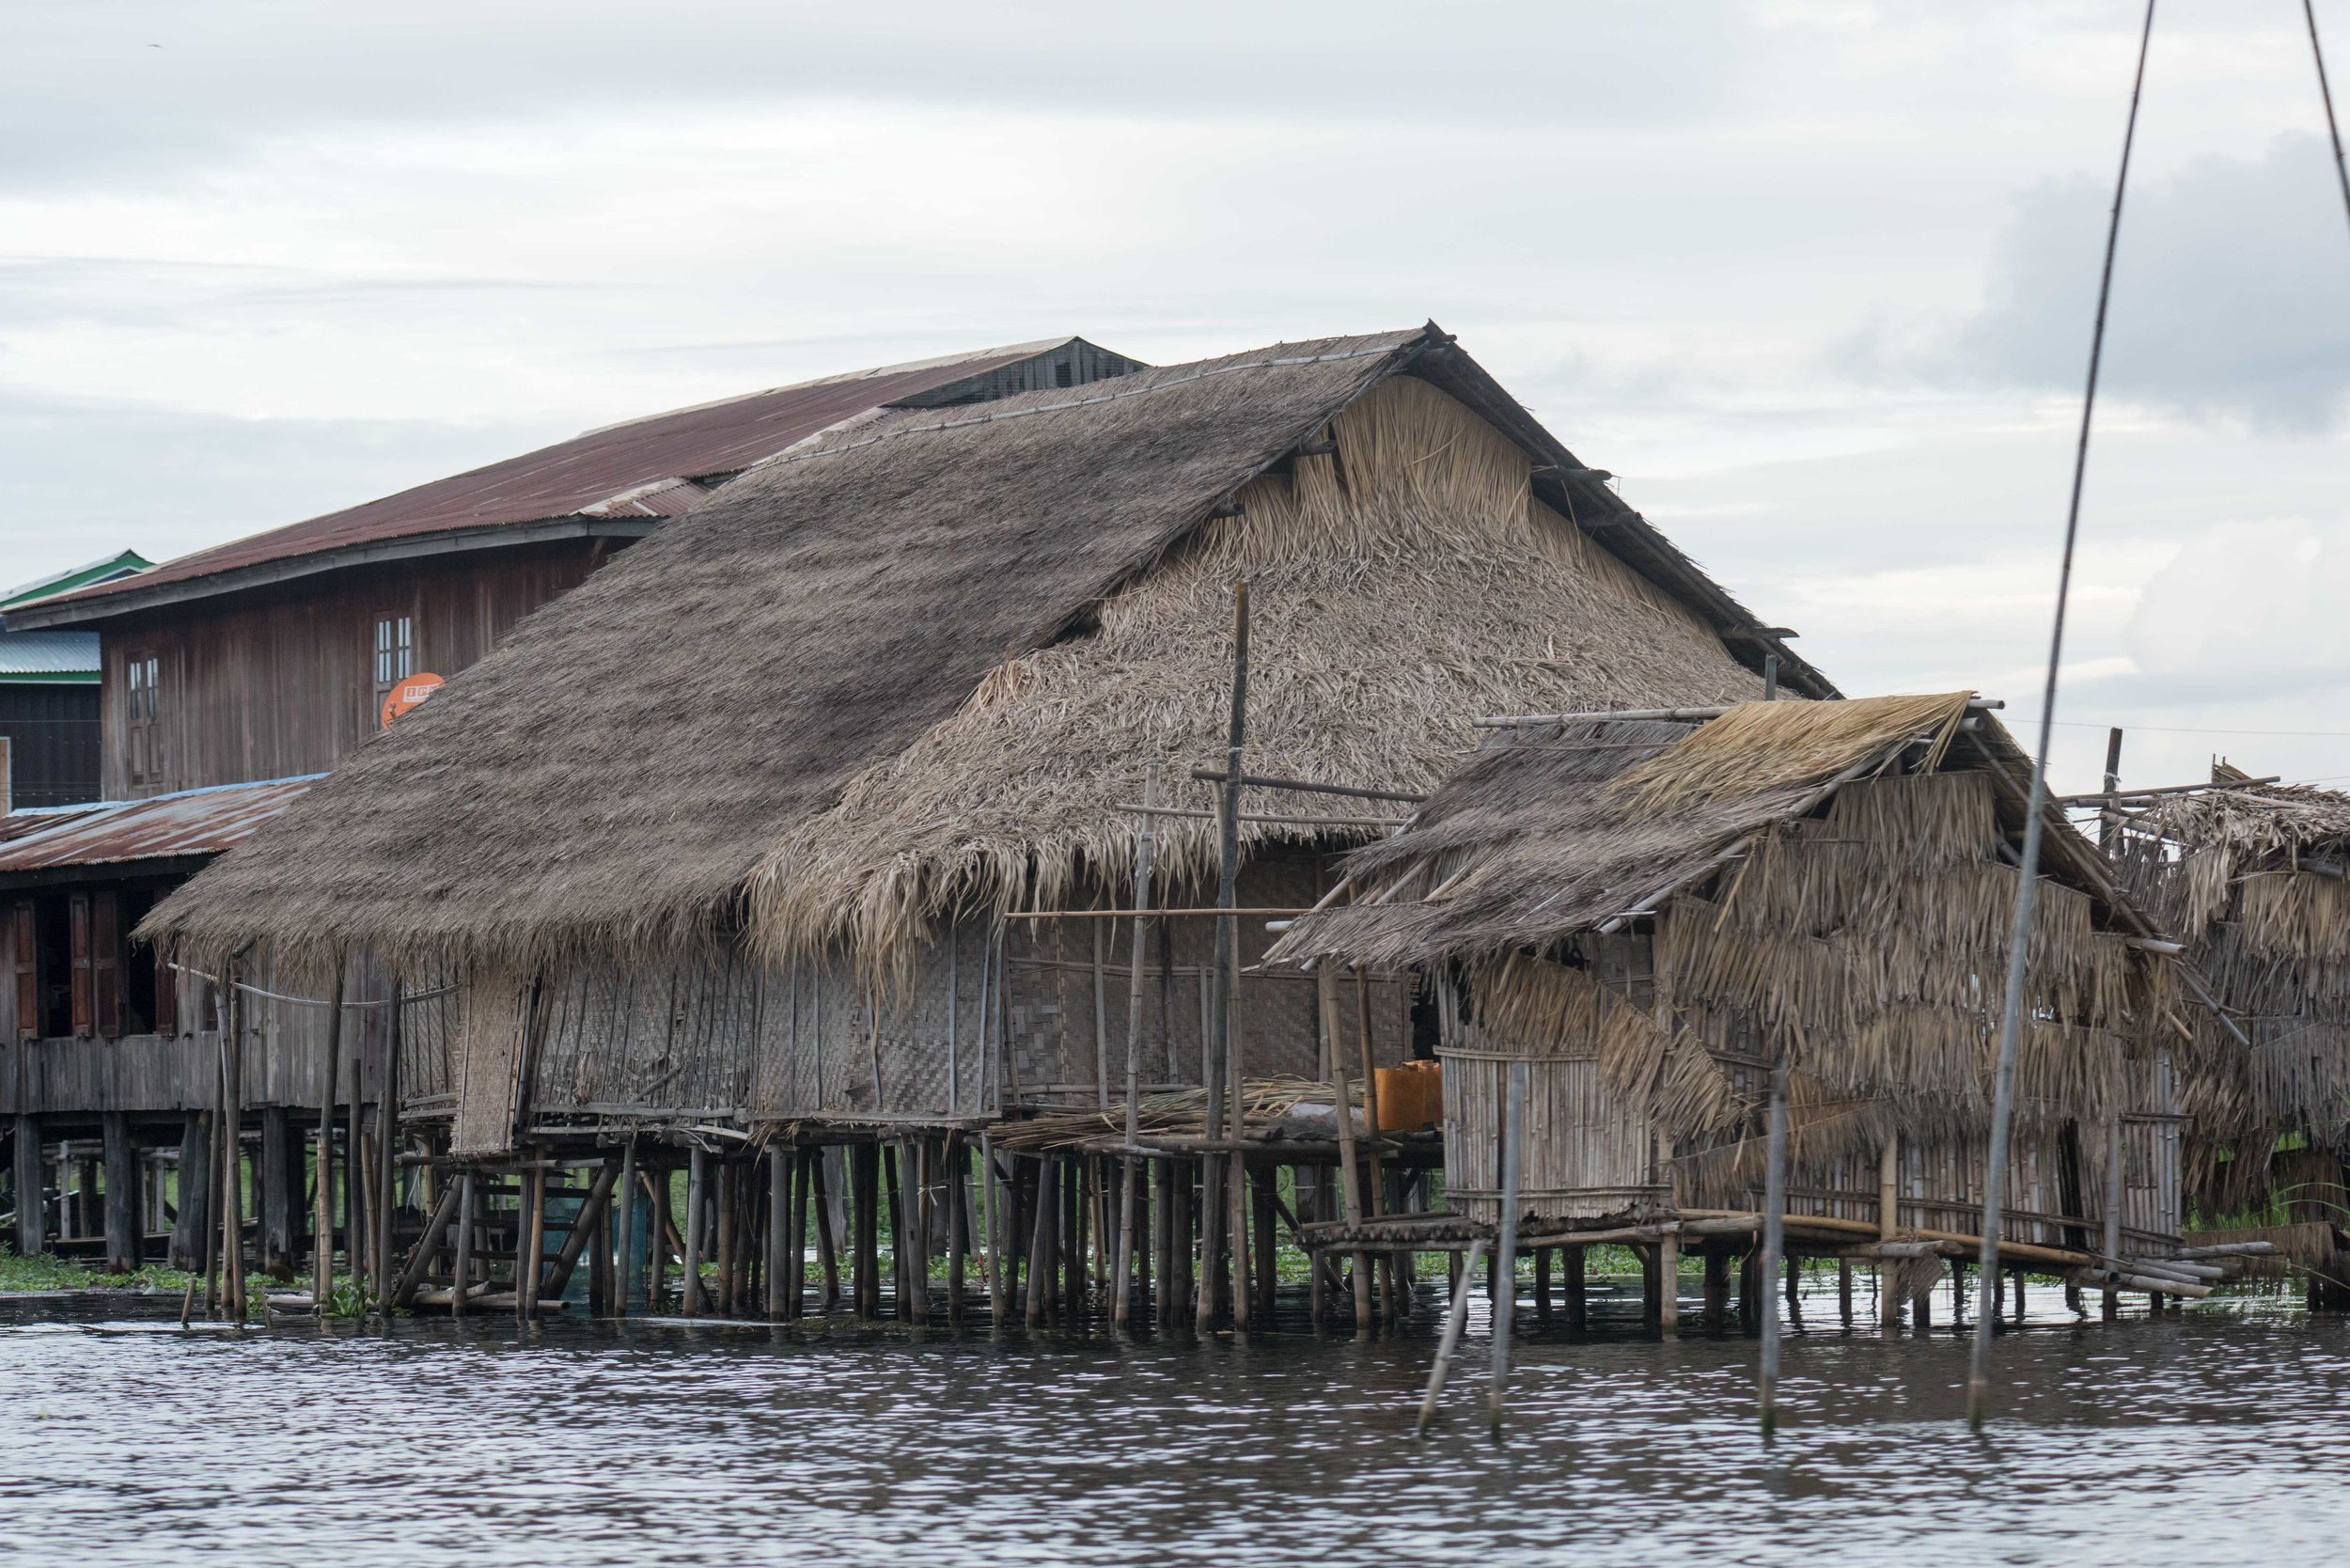 House 001, Inle Lake, Myanmar, 23 Nov 2017.jpg